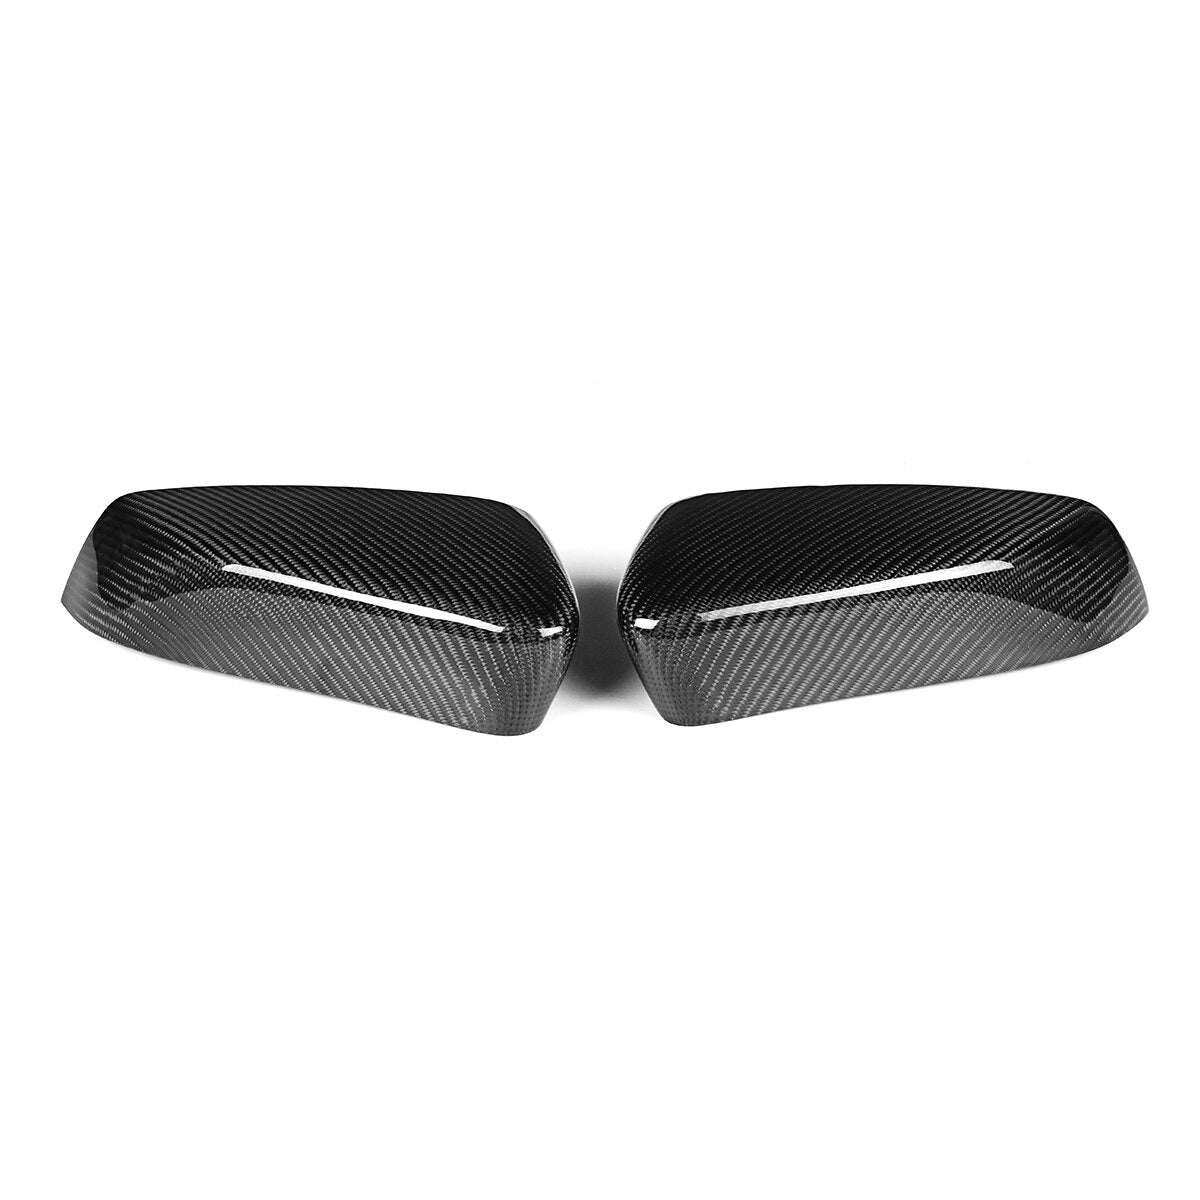 CarbonBargain™️ Carbon Fiber Side Mirror Covers For Ford Mustang 2010-2014